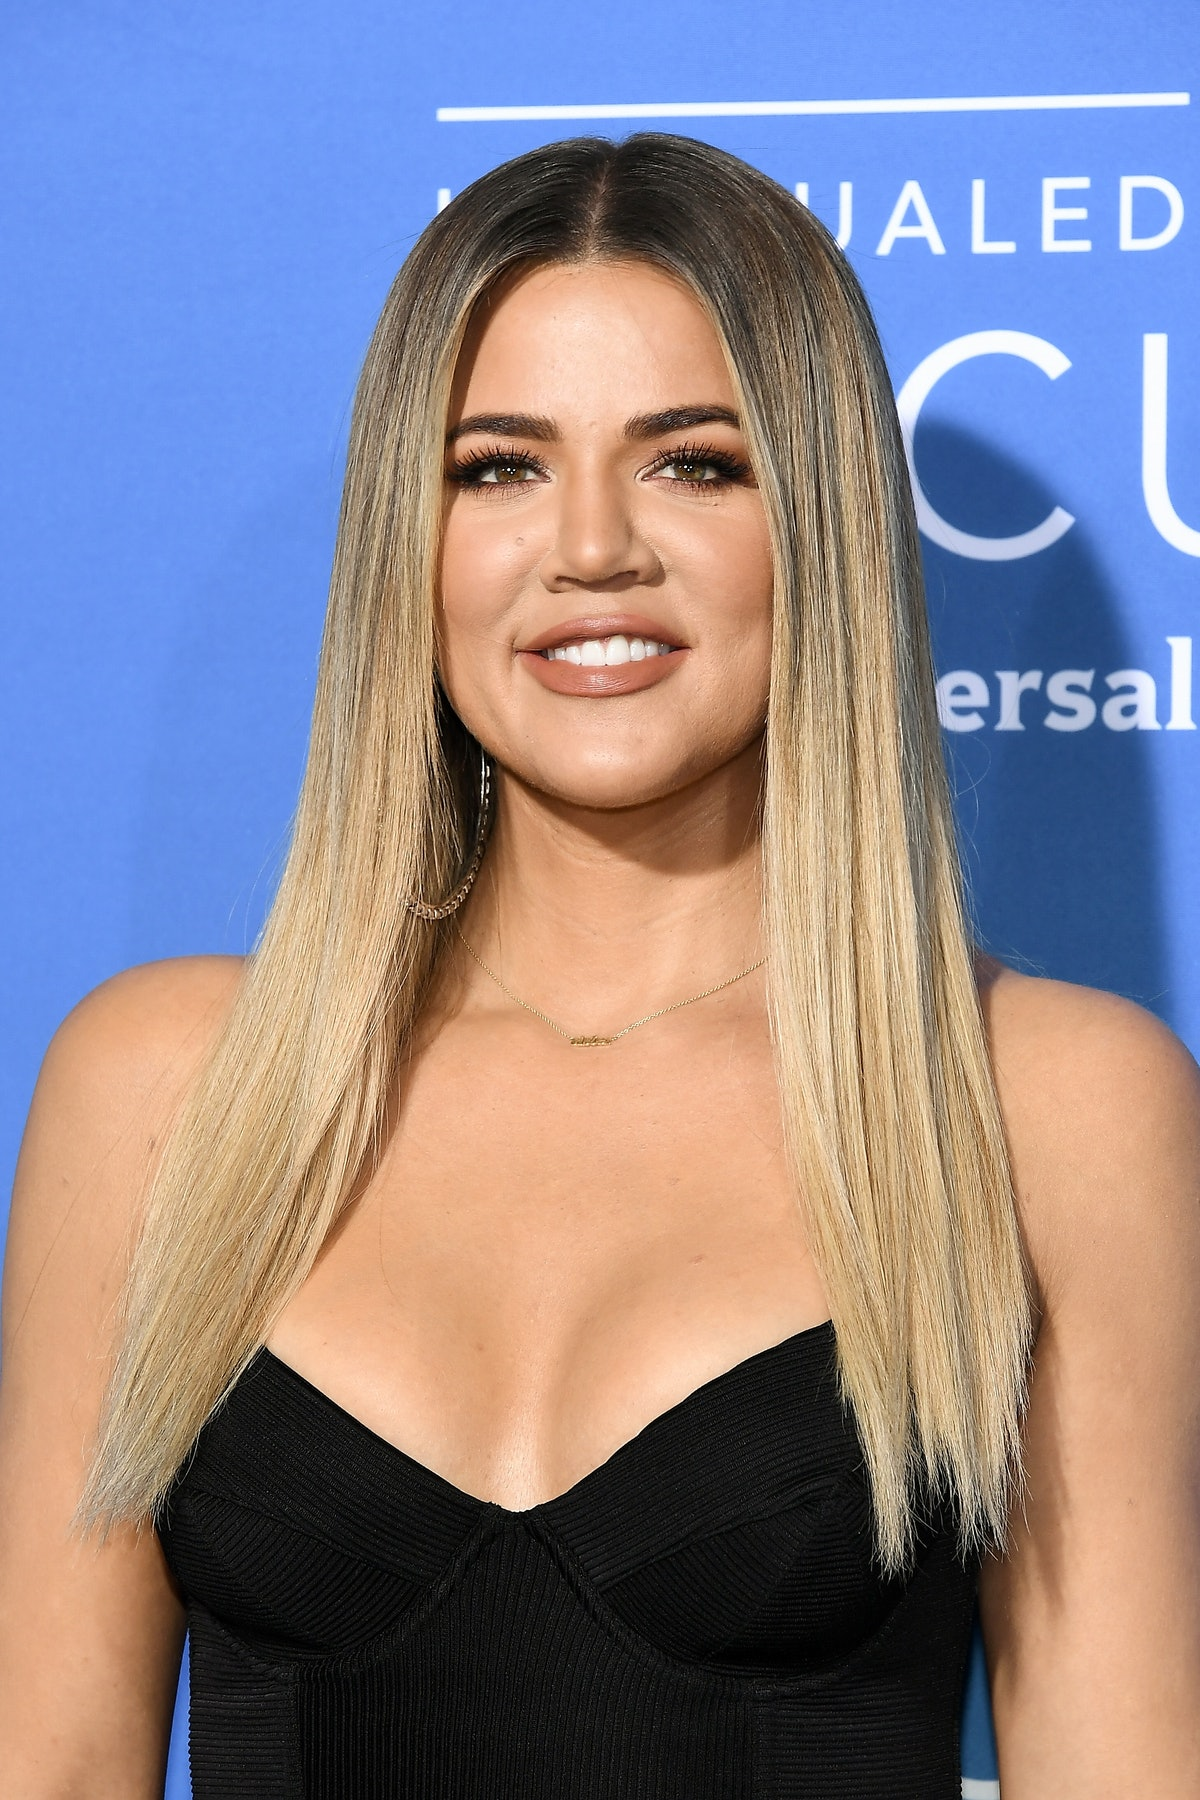 Khloe Kardashian Loves Princess Cupcake Jones & She's Not The Only Celeb Mom Who's Obsessed With The Character